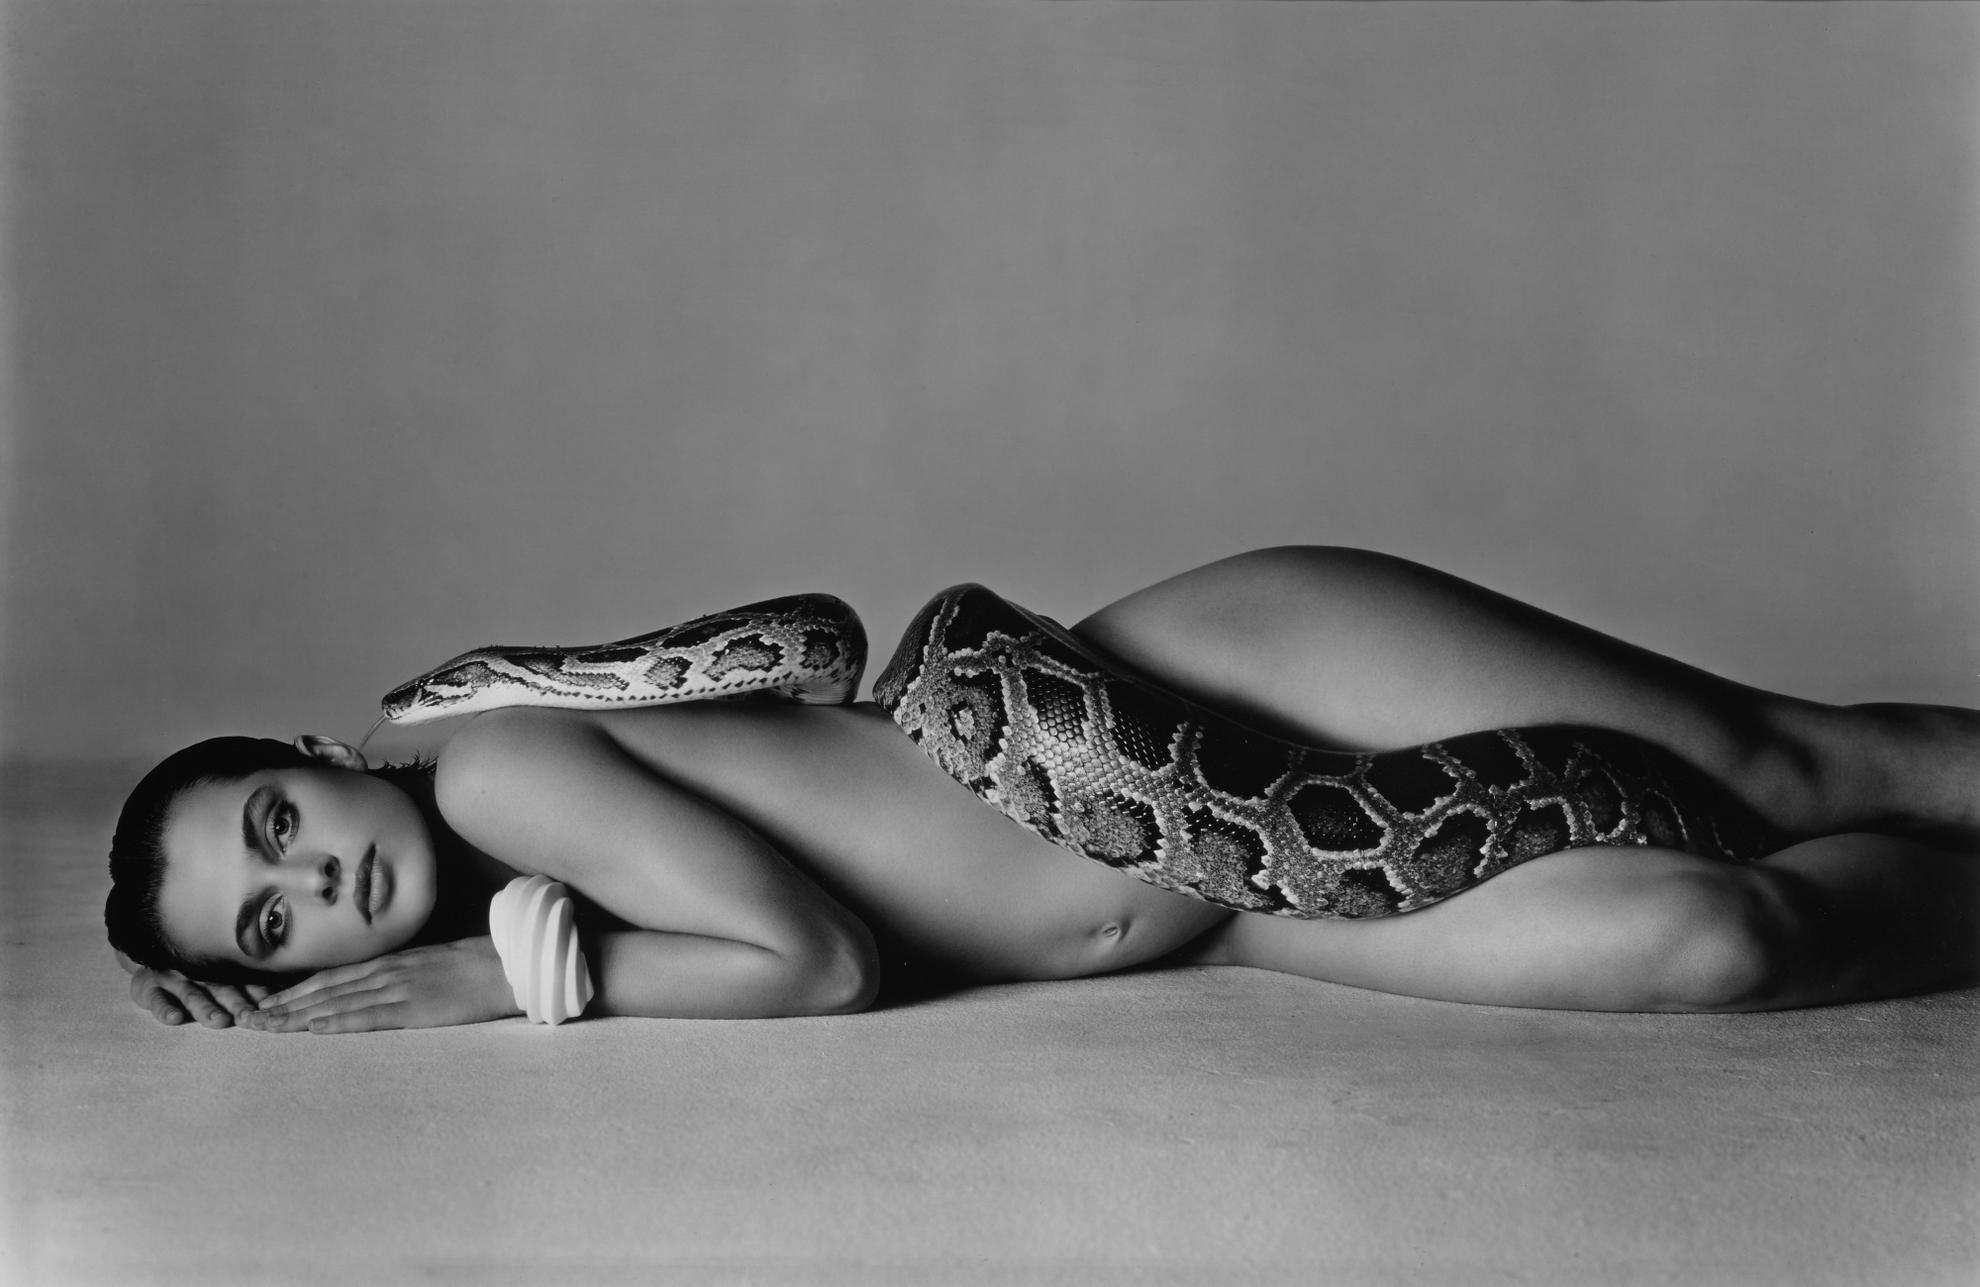 Richard Avedon-Nastassja Kinski And The Serpent, Los Angeles, California-1981